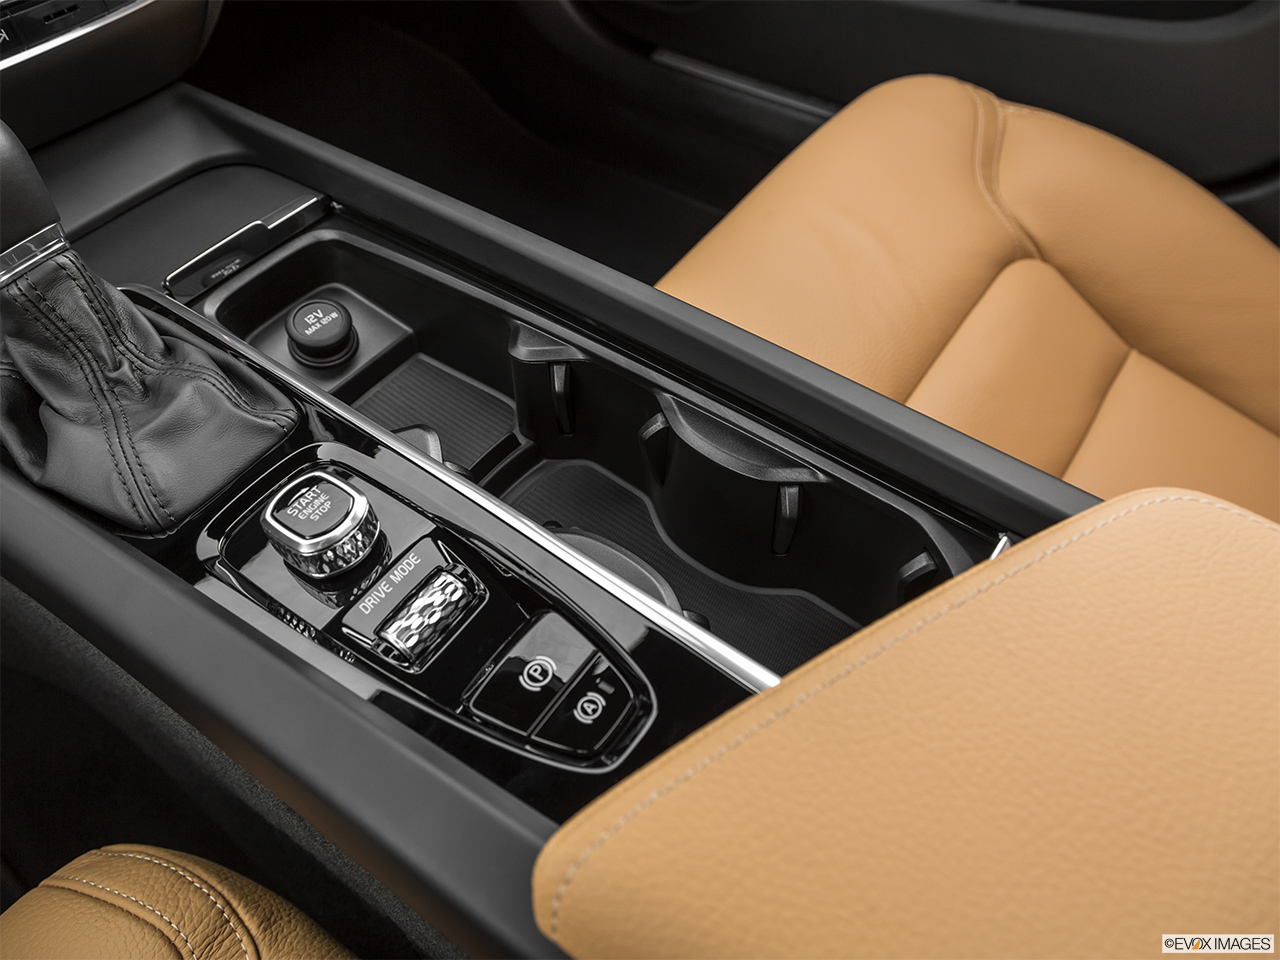 2020 Volvo V60 Cross Country T5 AWD Cup holders.